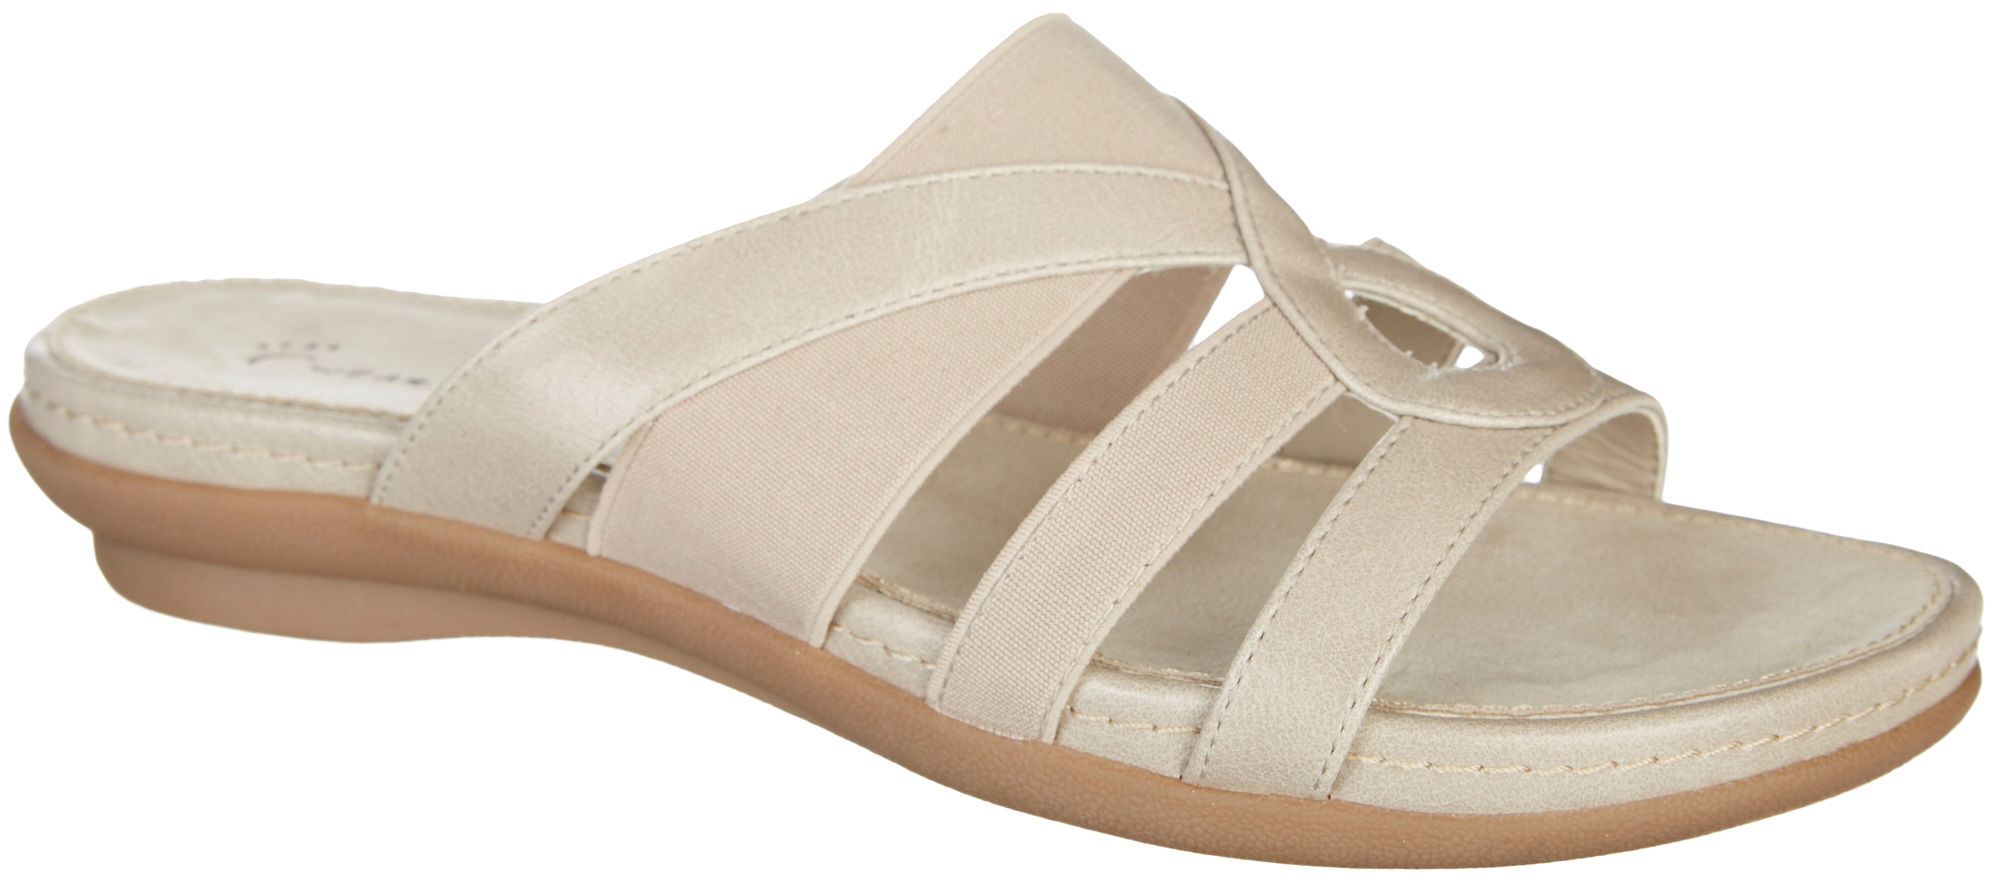 Wear Ever By Bare Traps Womens Aspire Sandals Ebay